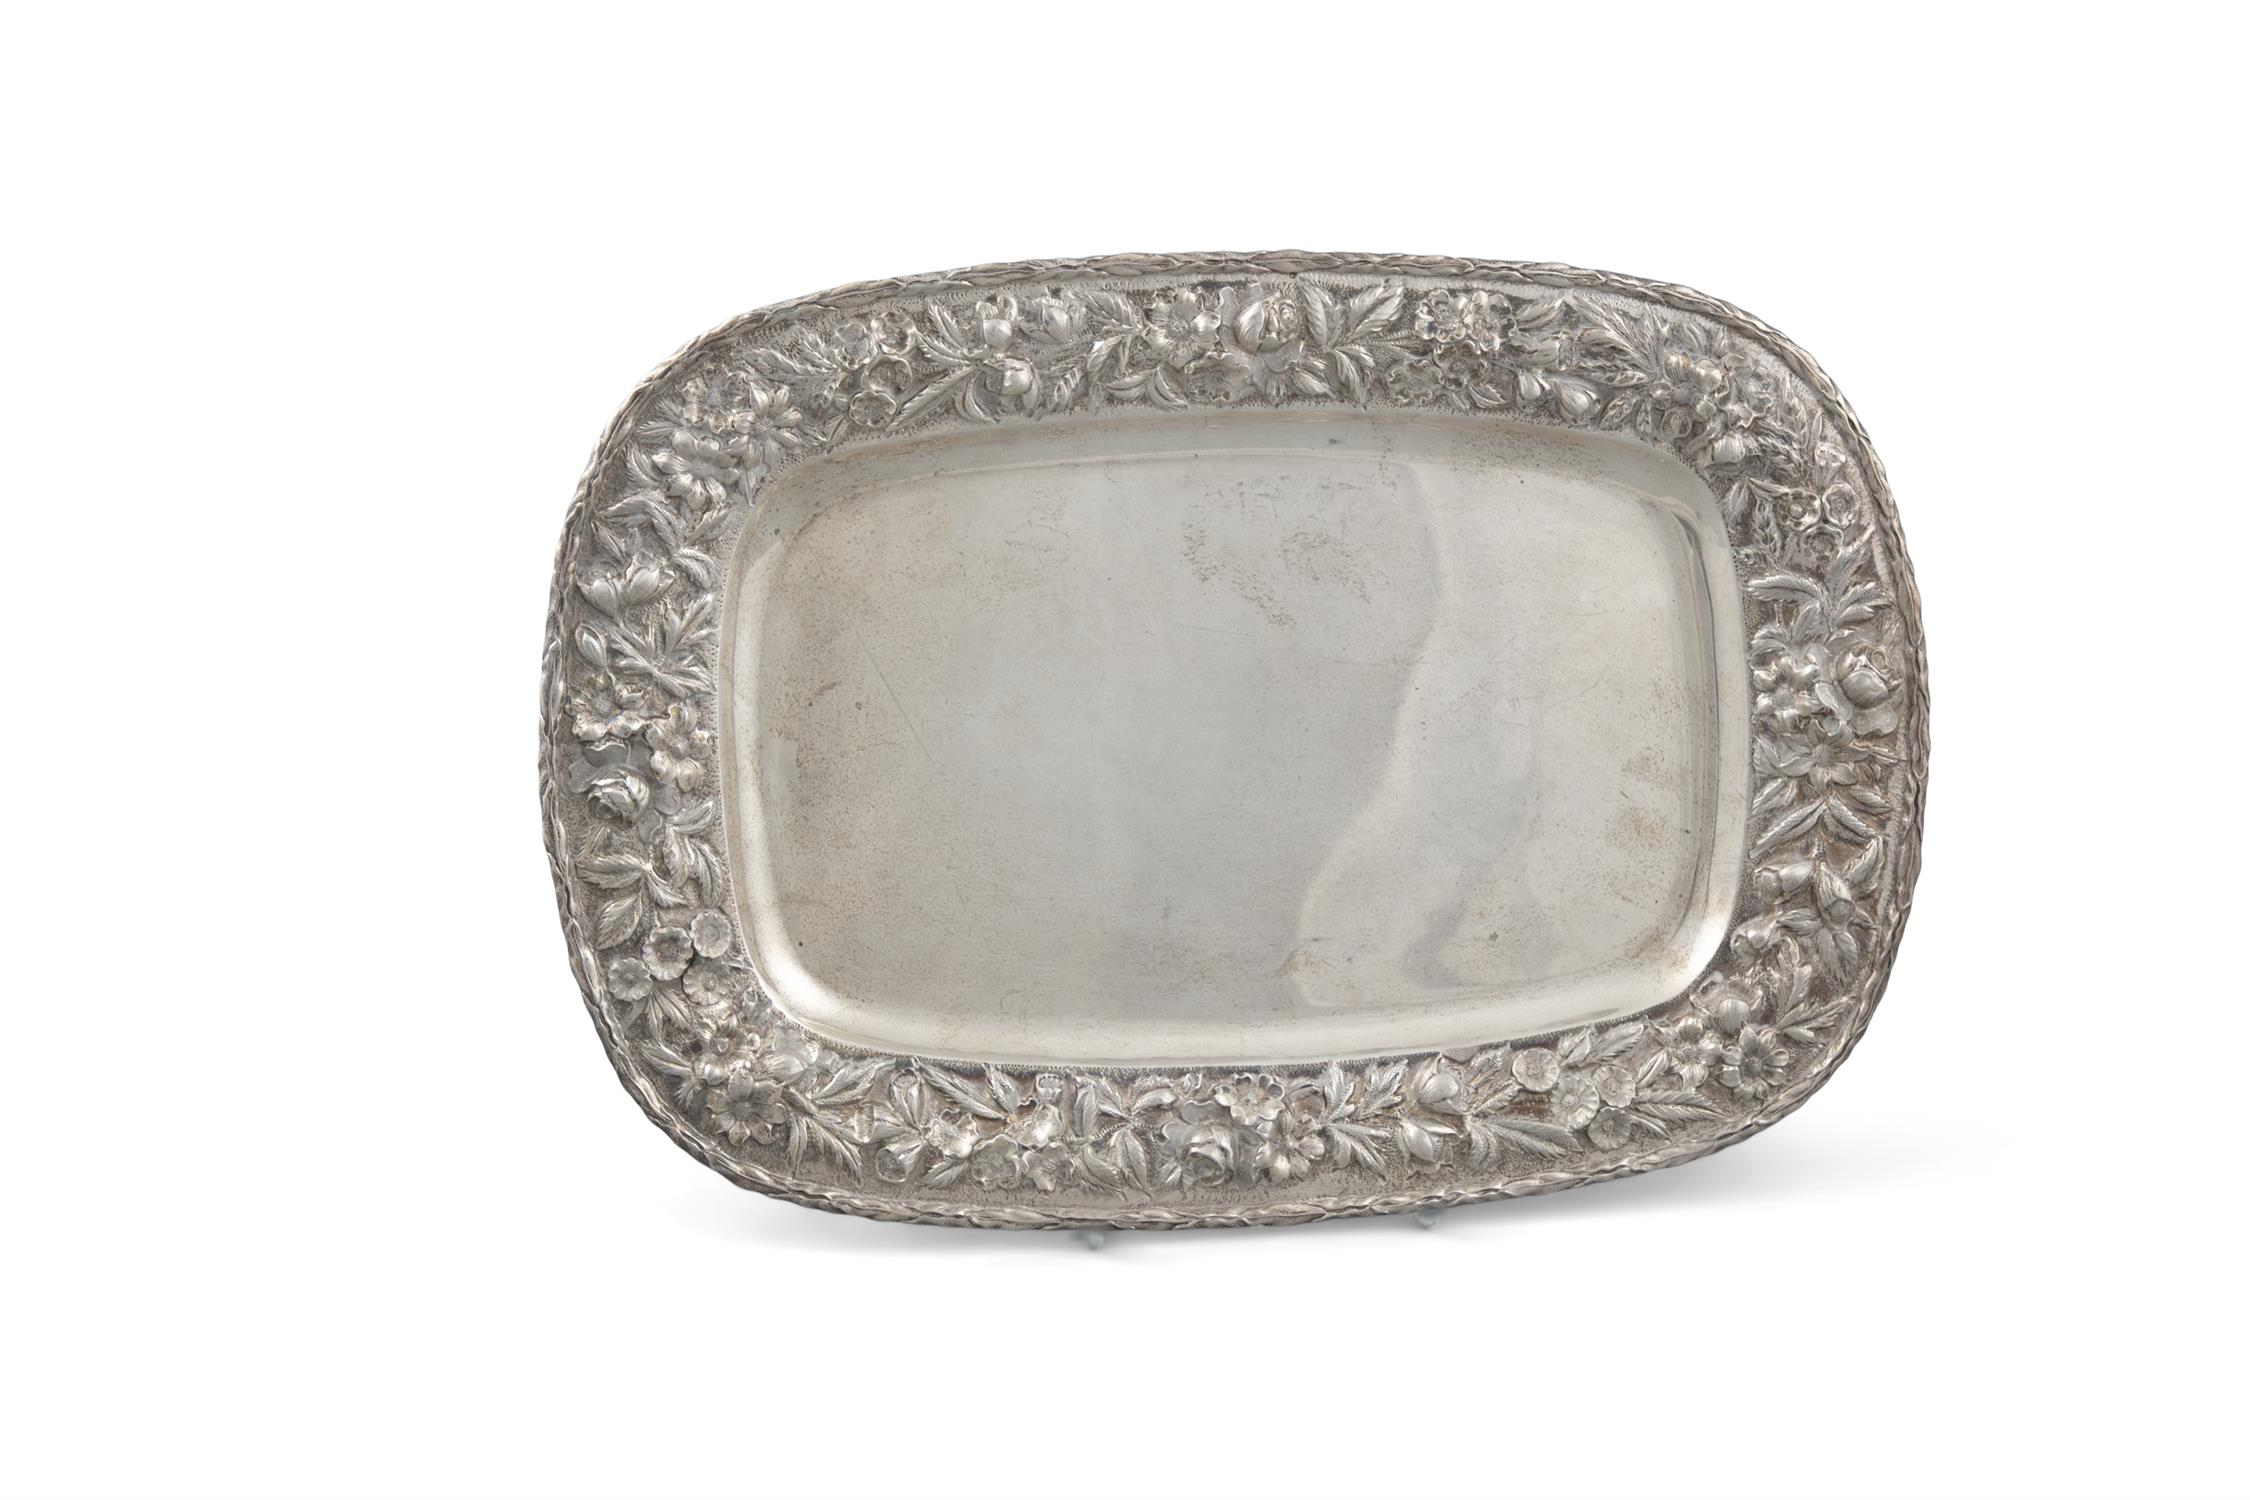 A PAIR OF VICTORIAN SILVER SWEETMEAT BASKETS, London c. 1894, maker's mark of Holland, - Image 2 of 5